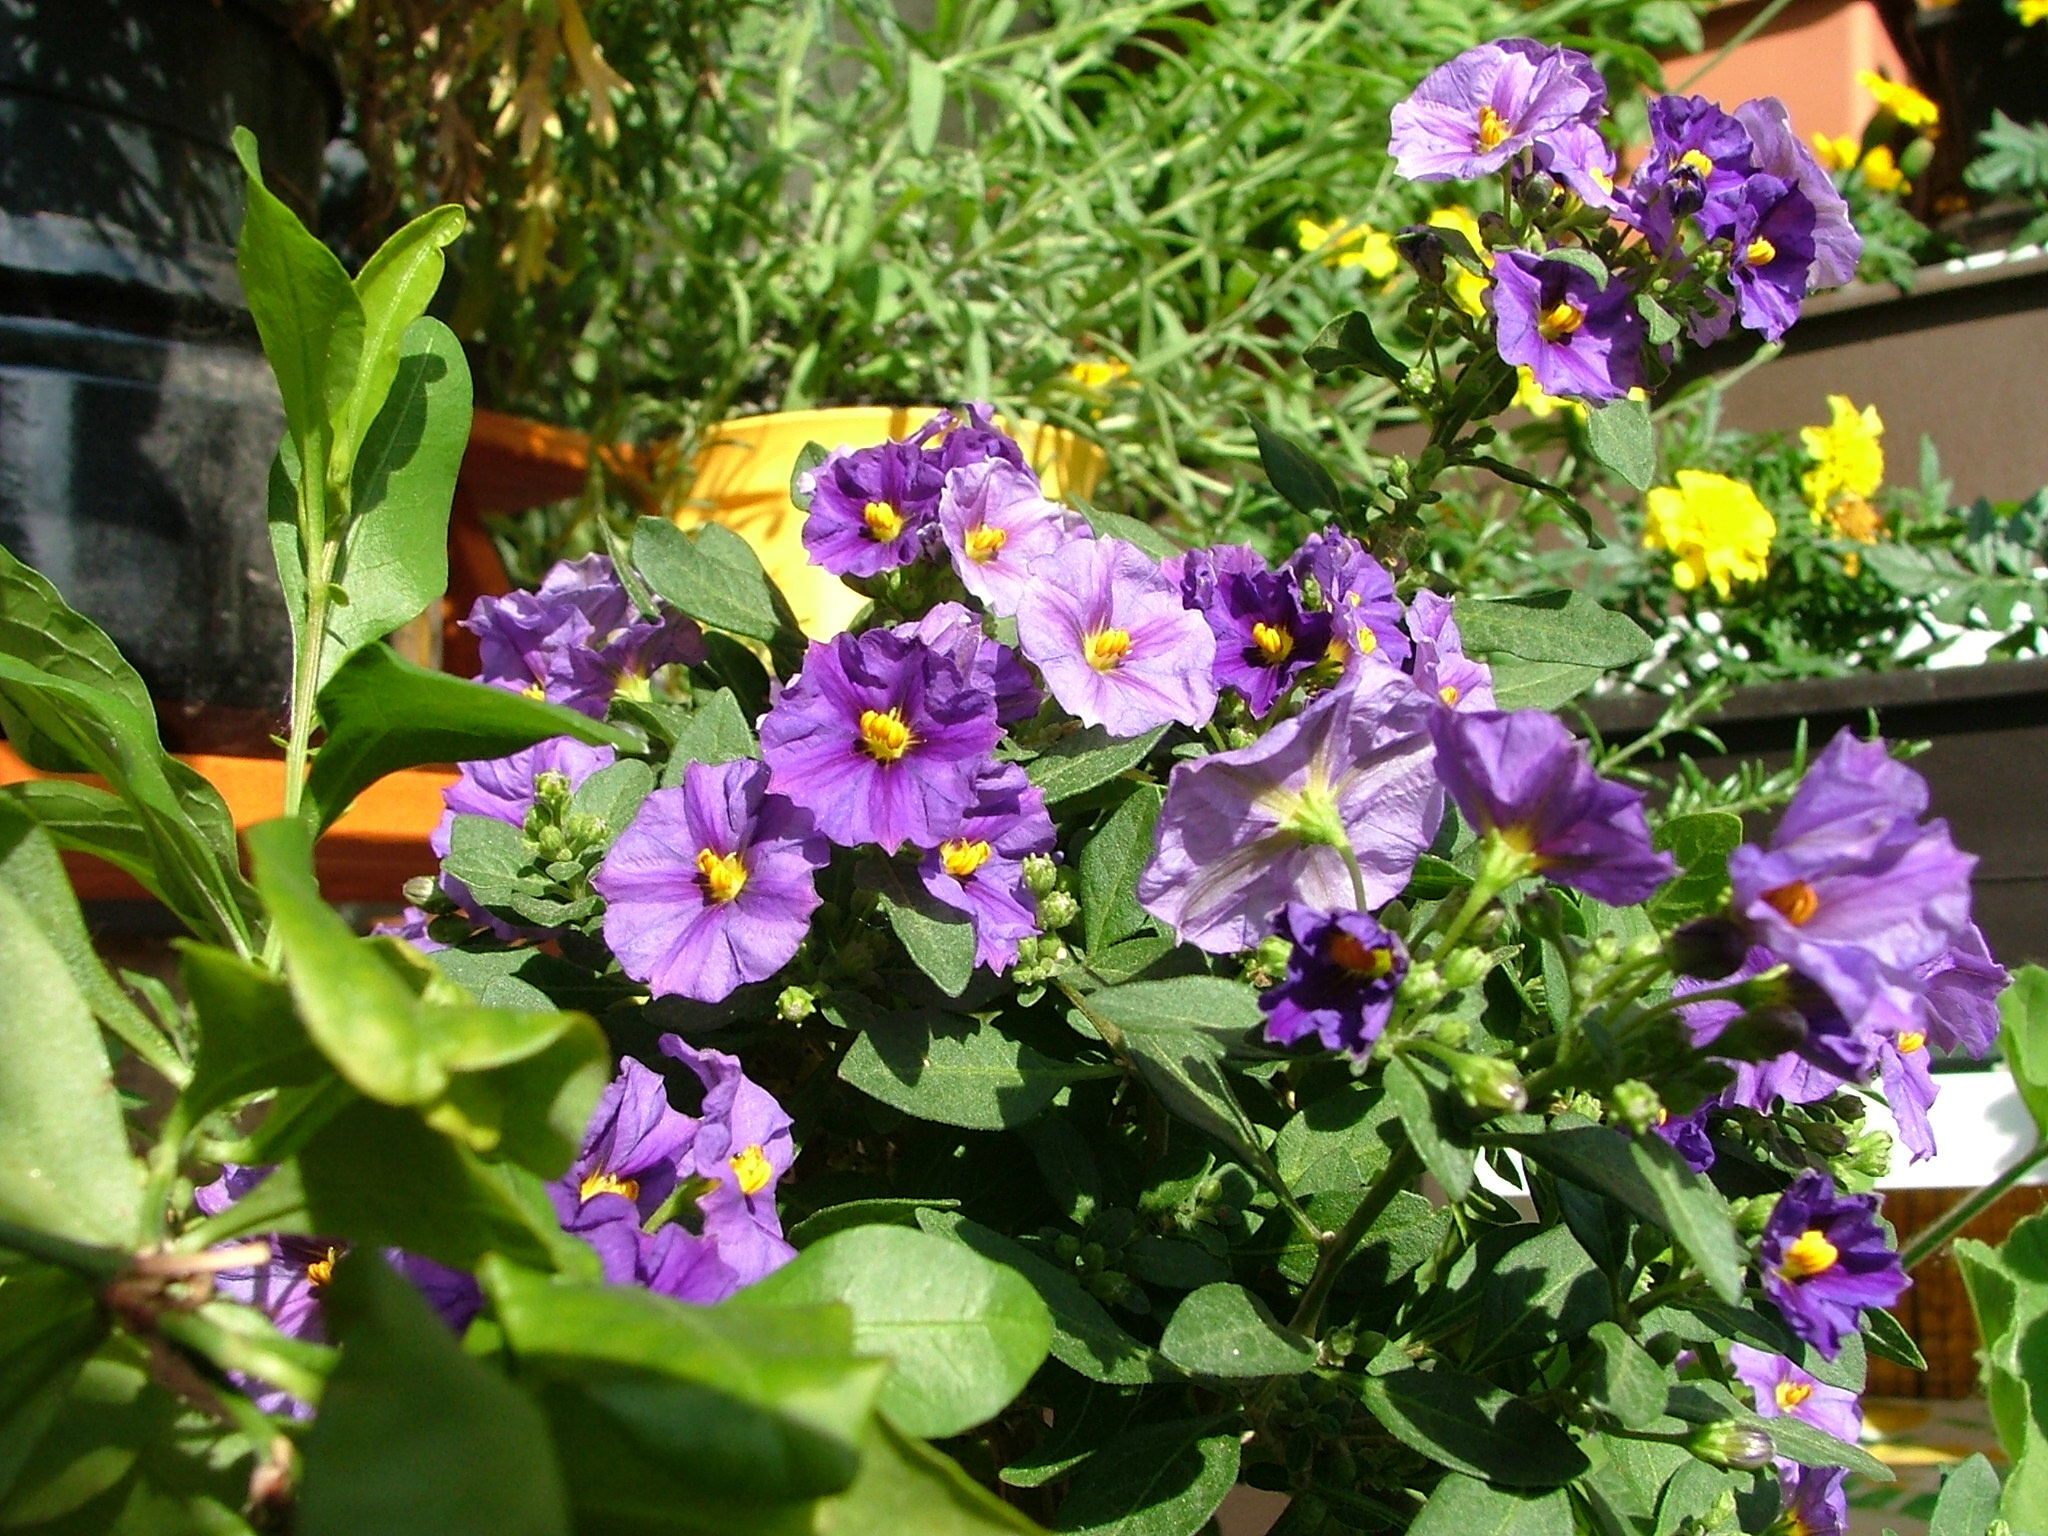 Our flowers in the balcony Glory Flower Princess Flower Tibouchina urvillea